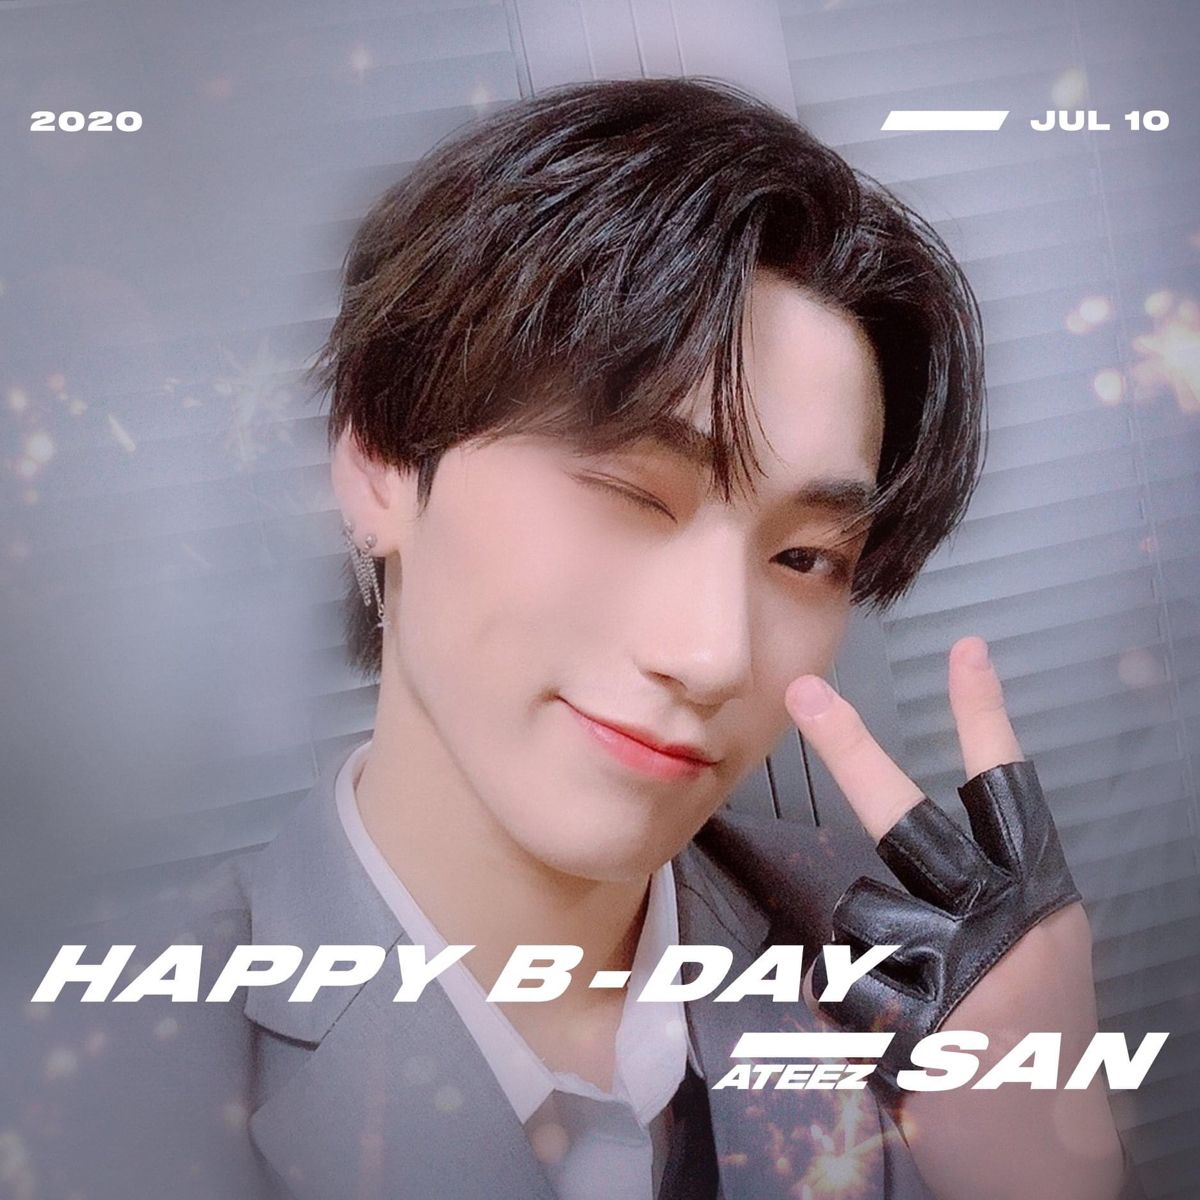 HAPPY BIRTHDAY SAN! ⠀ Happy birthday to choi san 🎉 Comment